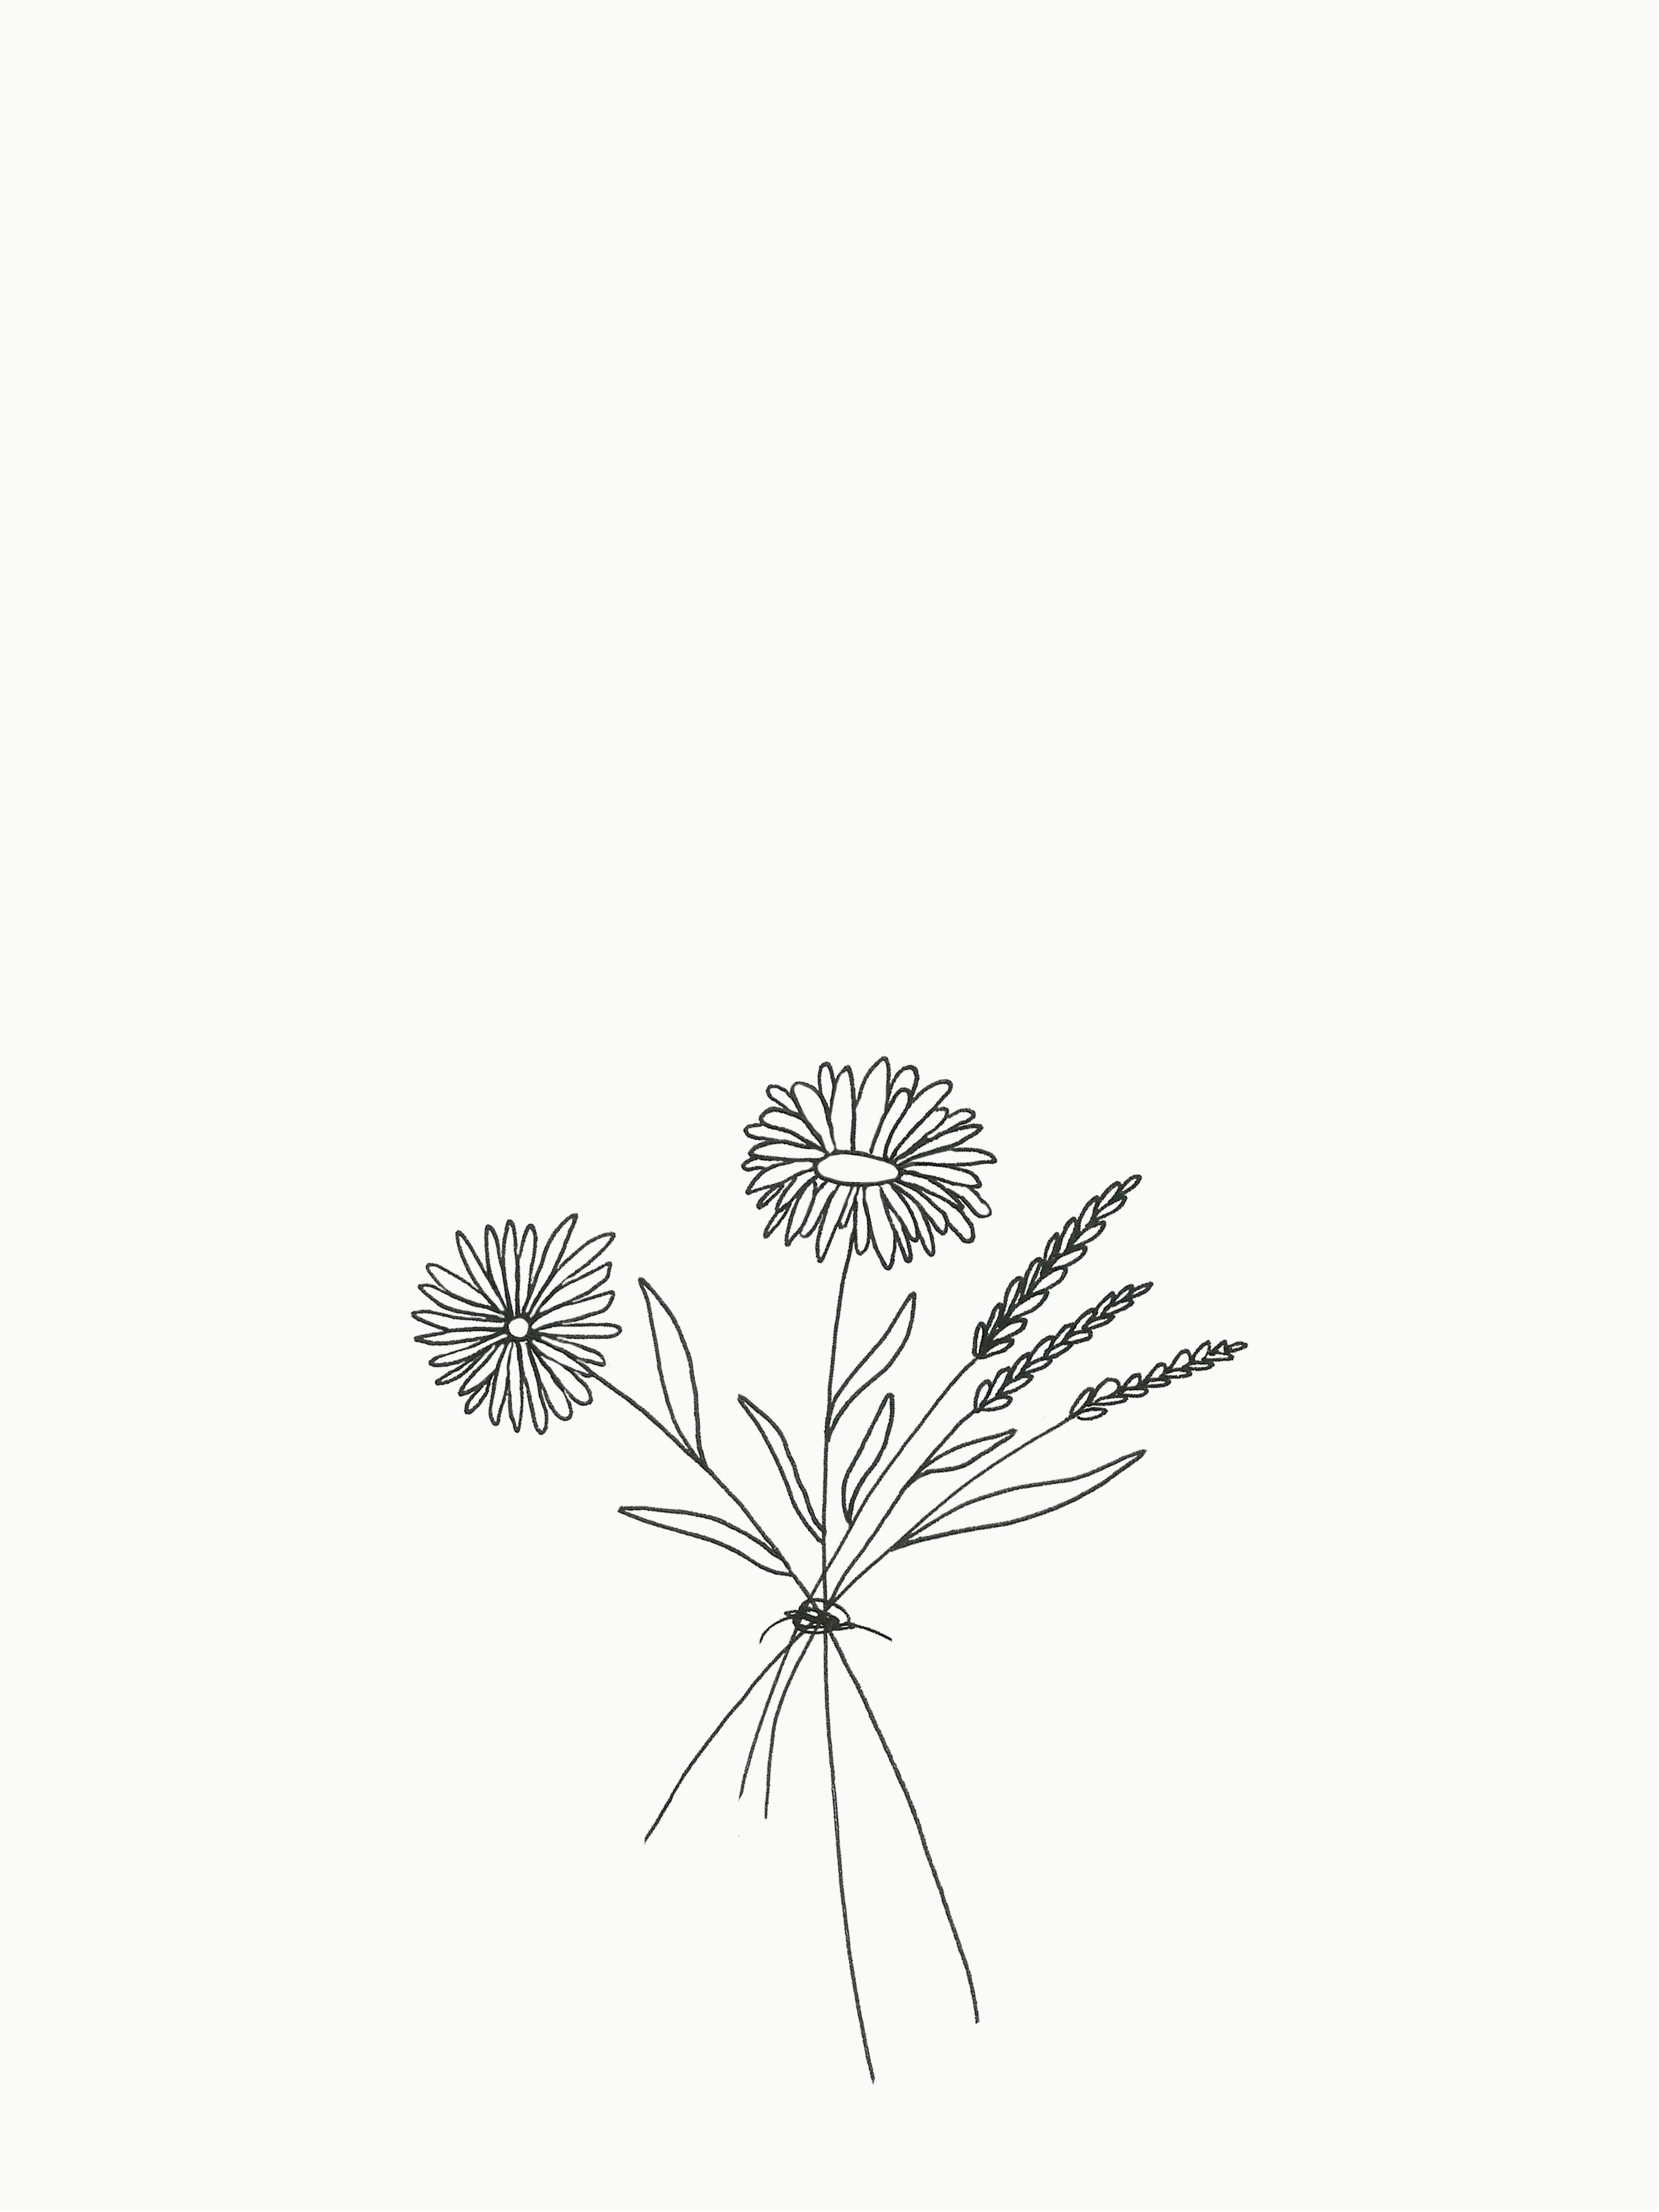 Detailed Simple Bouquet Of Flowers Drawing Flower Drawing Design Flower Line Drawings Flower Bouquet Drawing